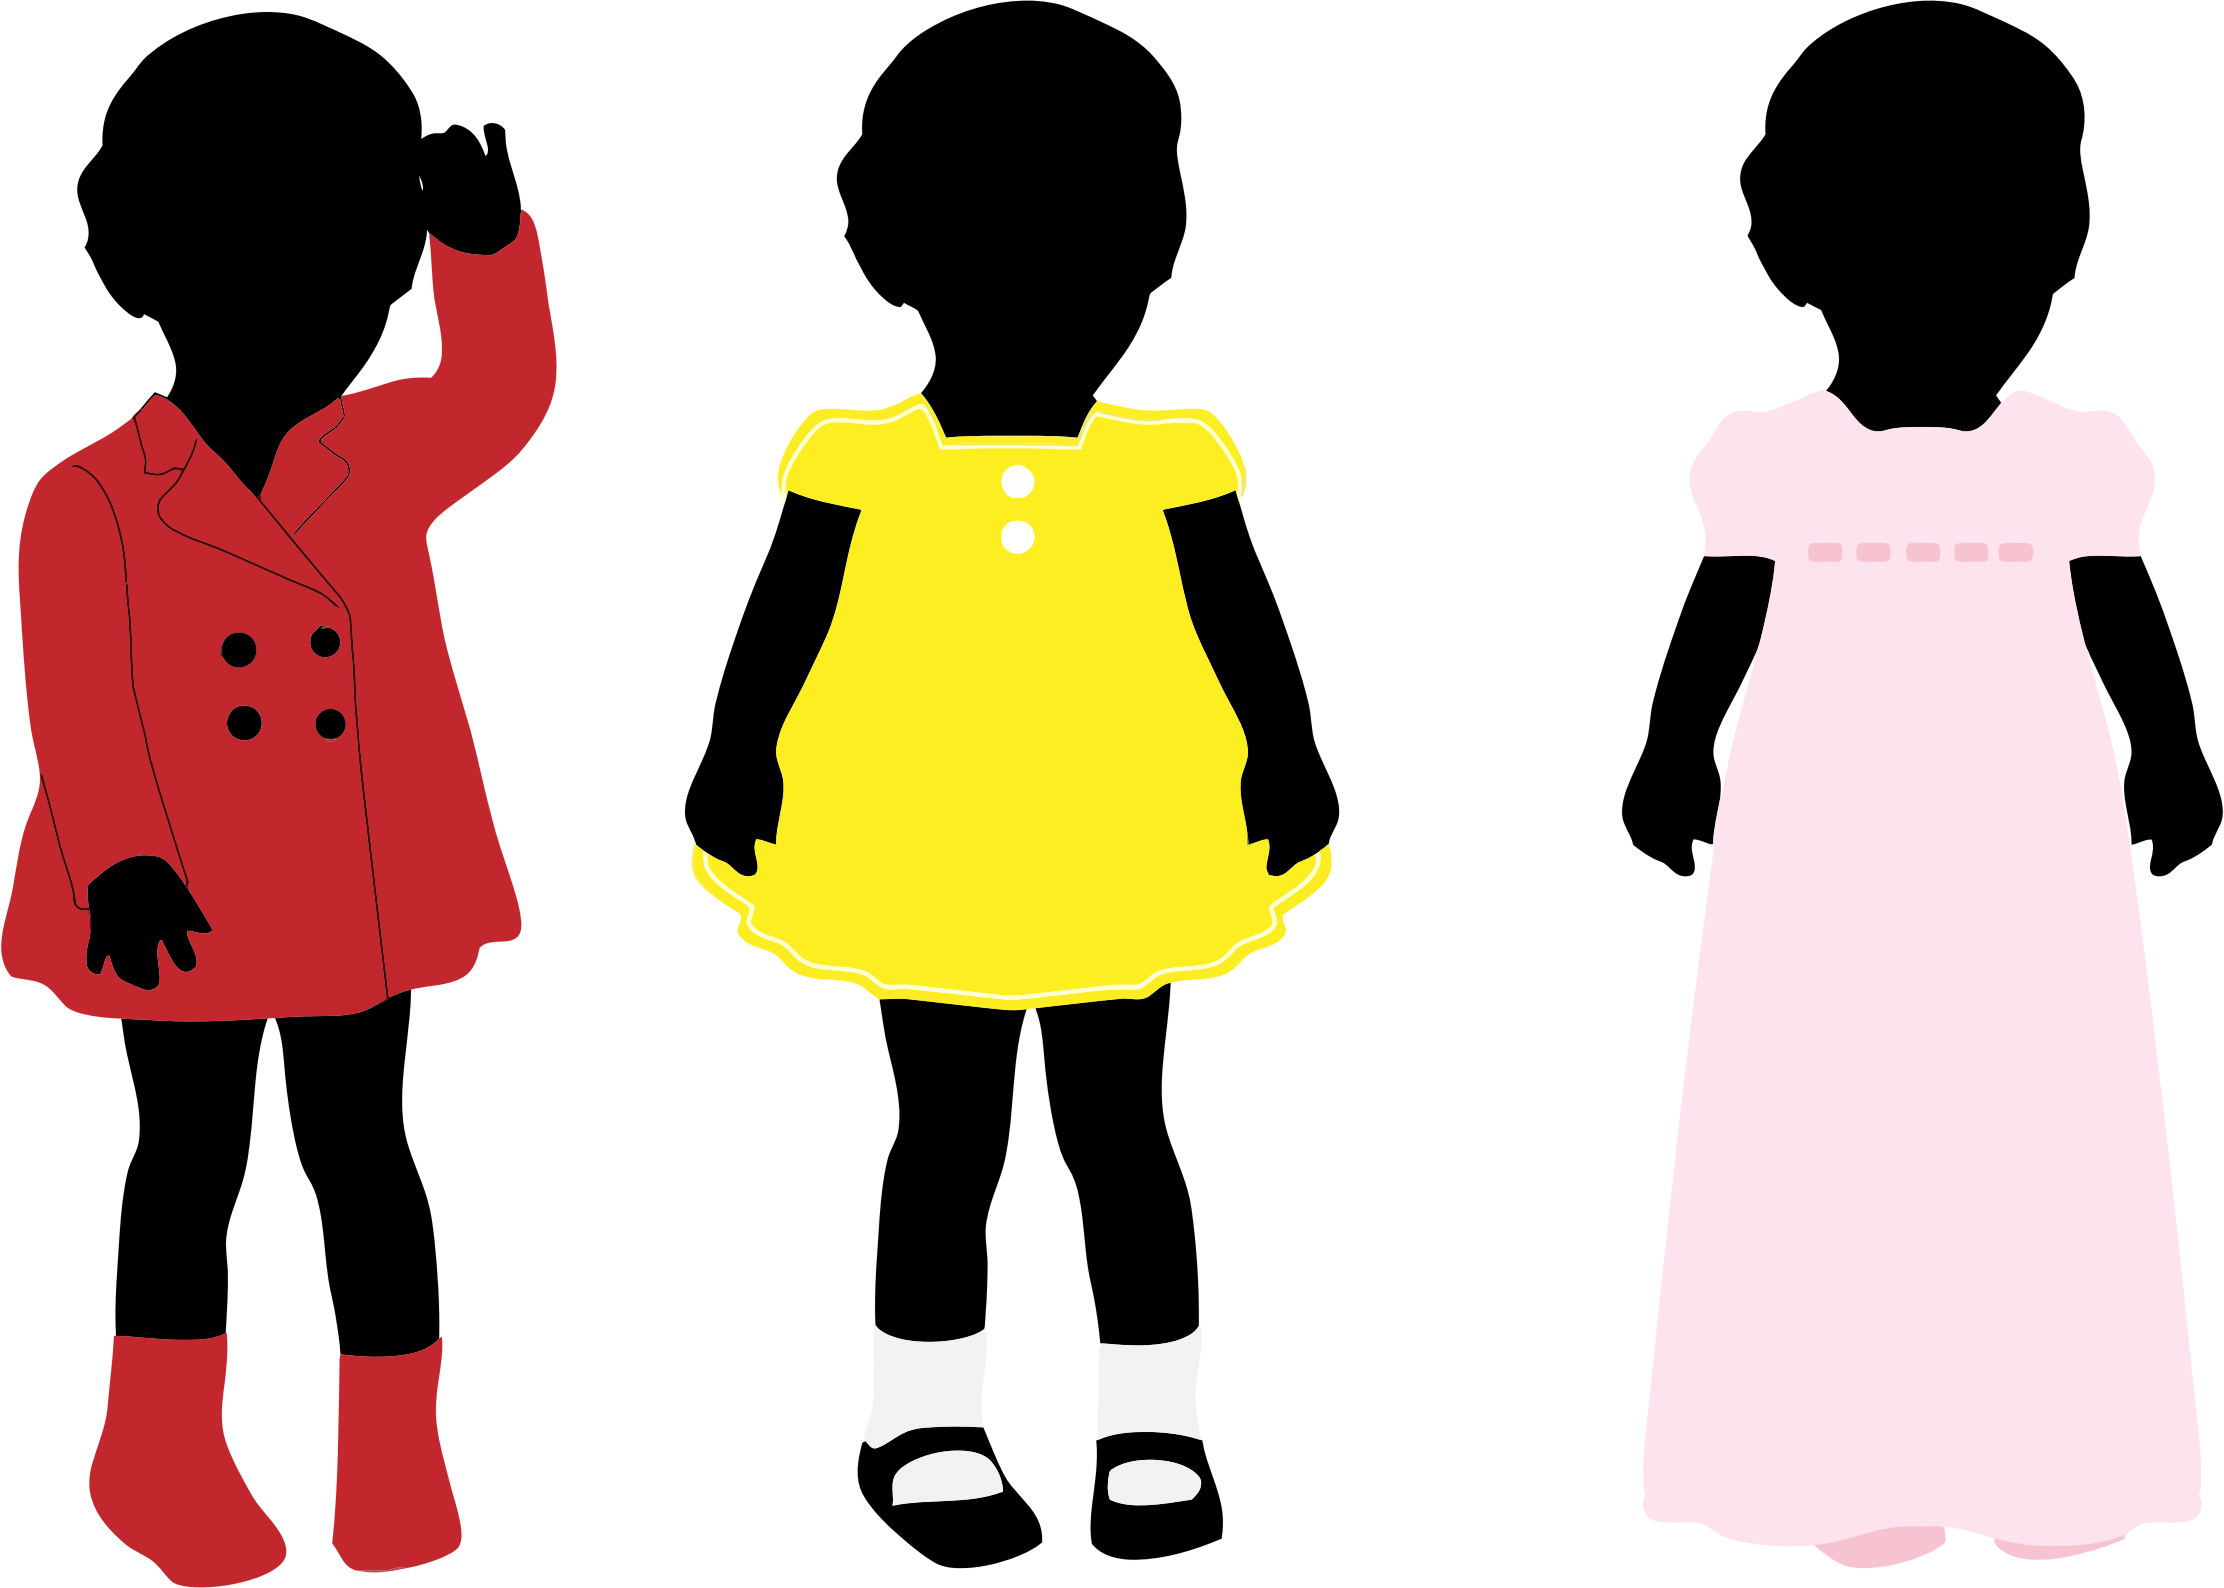 3 Girls Wearing Colorful Dresses Silhouette by GDJ